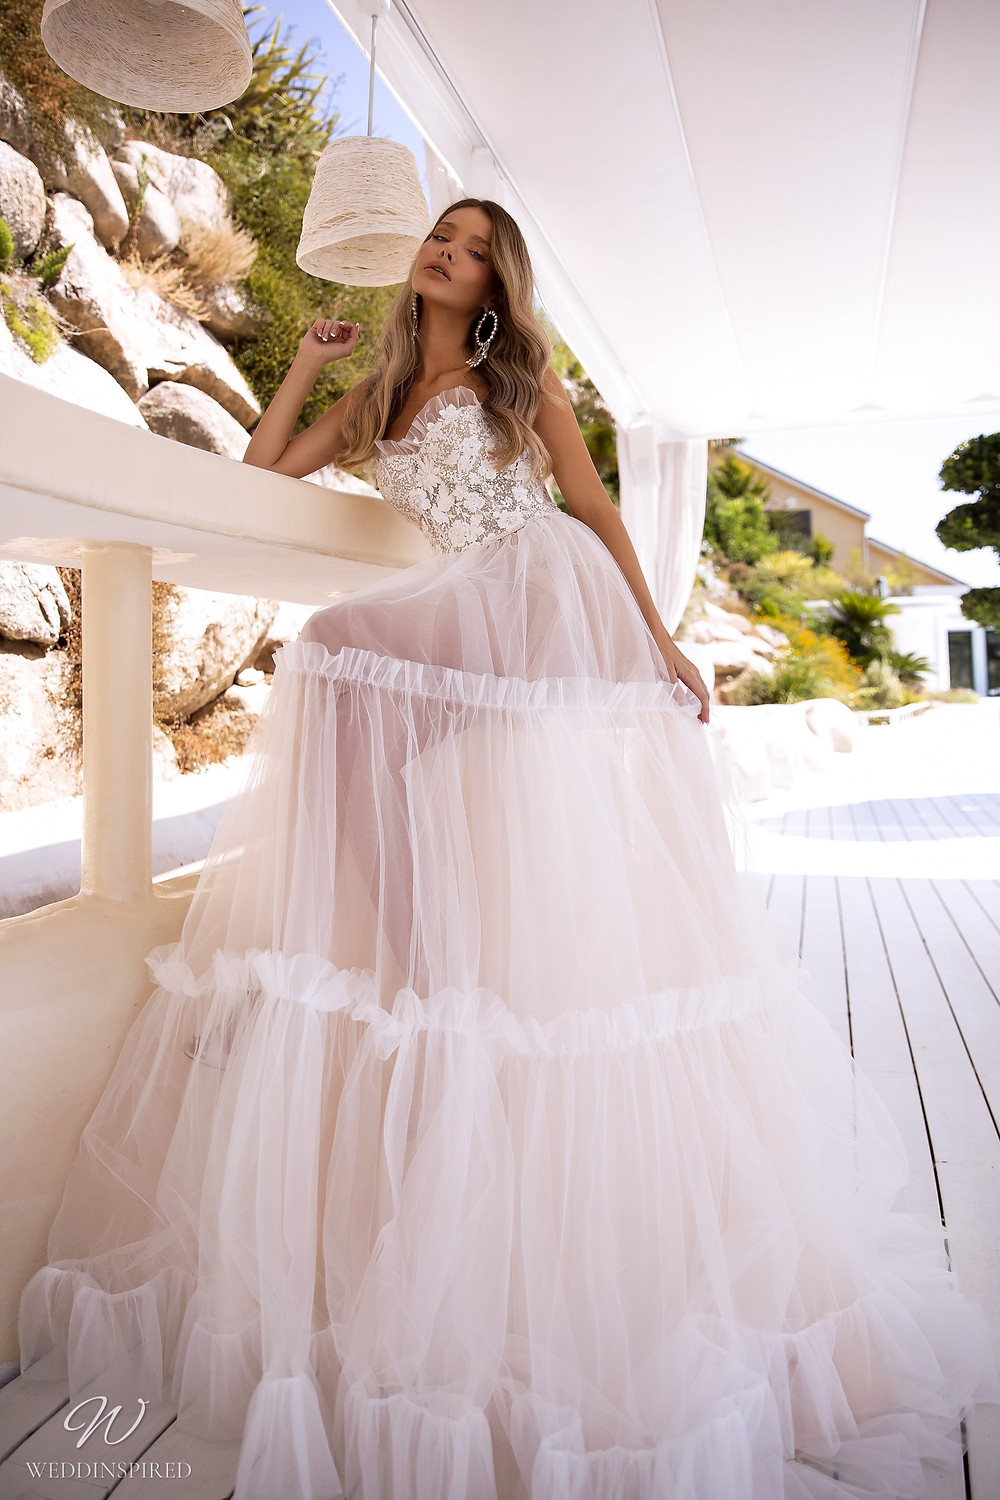 A Tina Valerdi strapless tulle A-line wedding dress with lace and a ruffle skirt